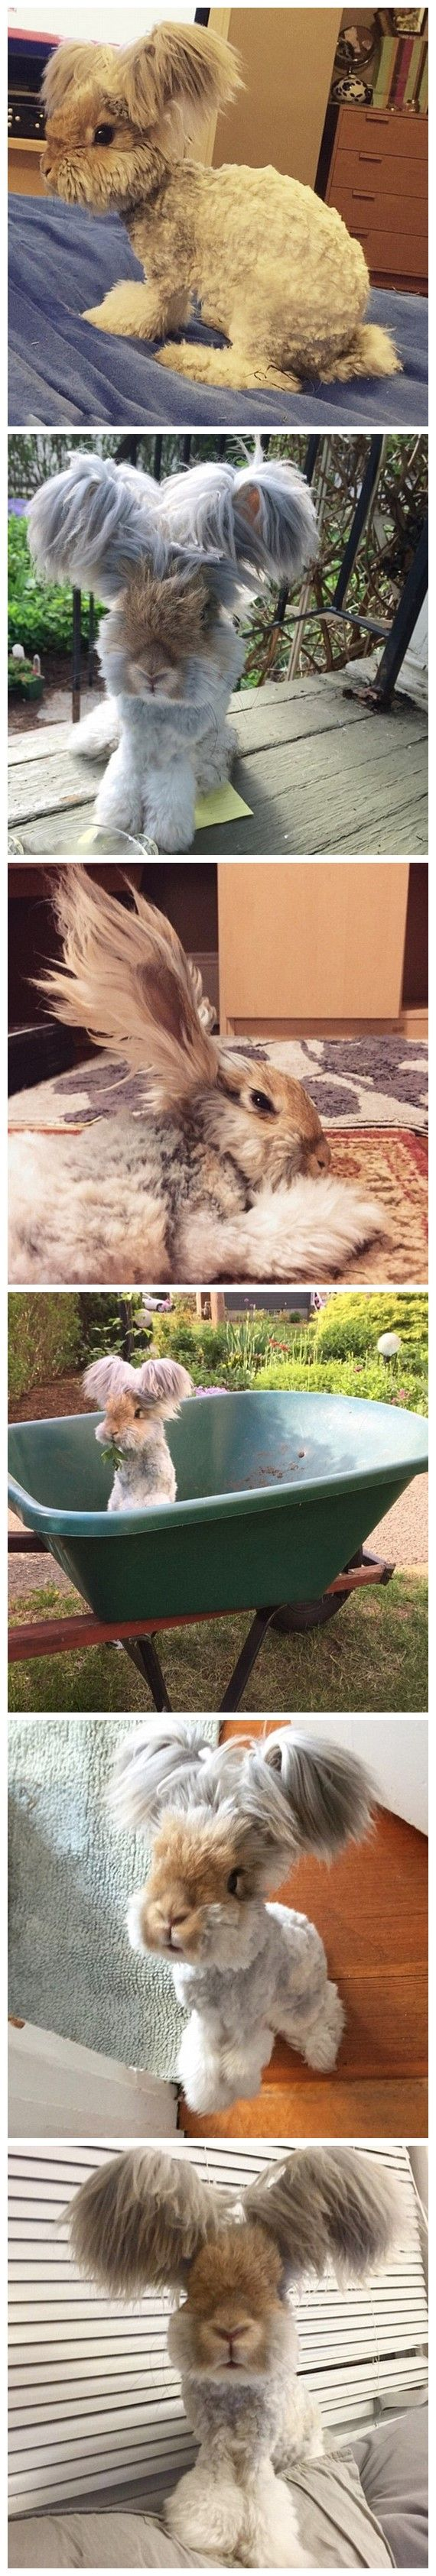 This is Angola rabbit named Wally from Massachusetts of USA has a really big ears. It looks like waving the wings when it is running.